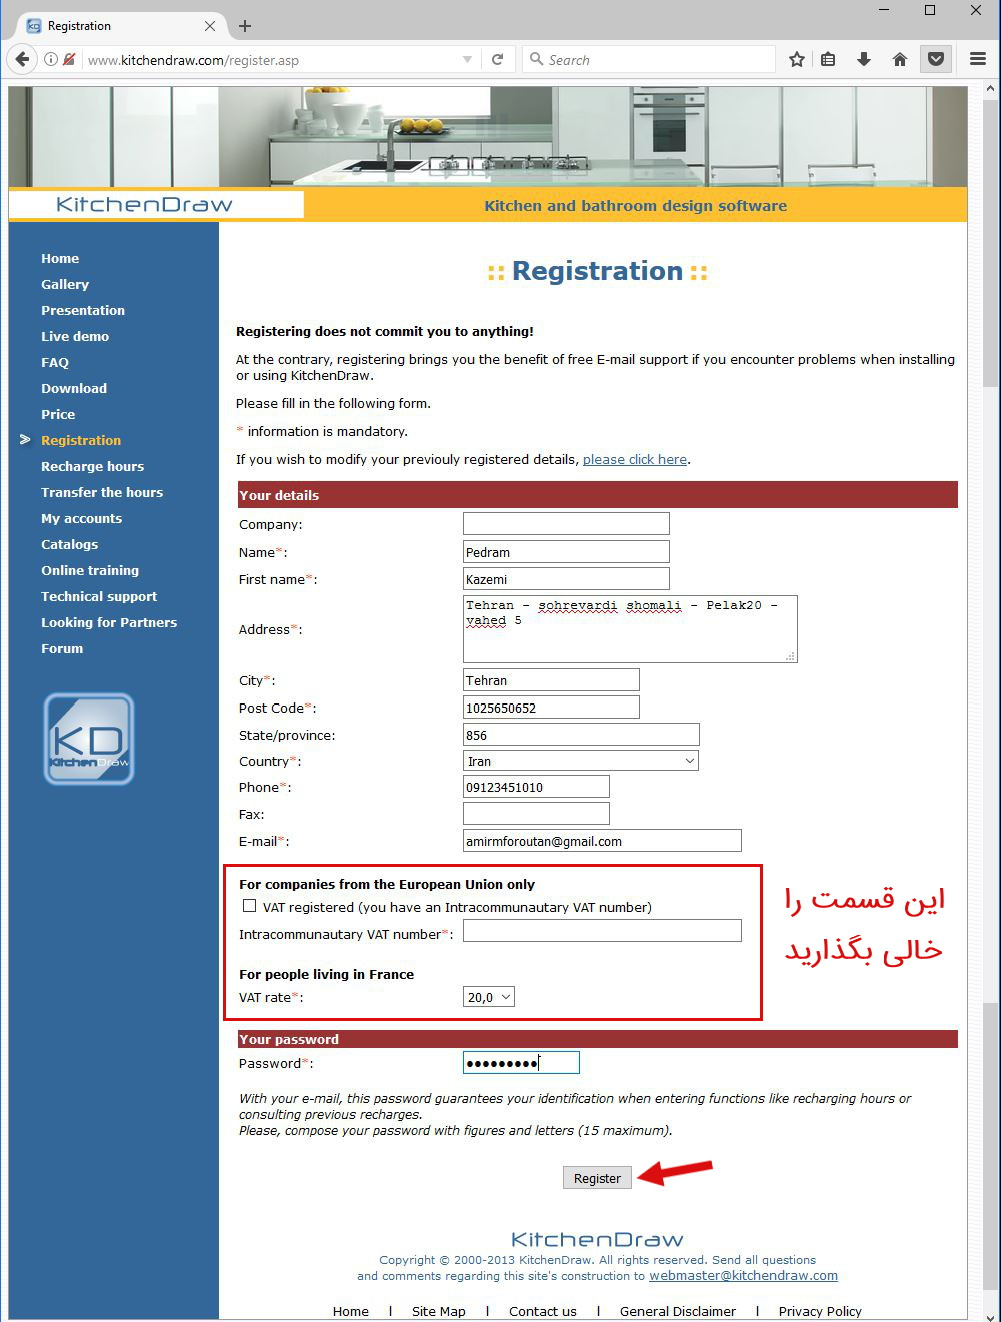 KitchenDraw_registration